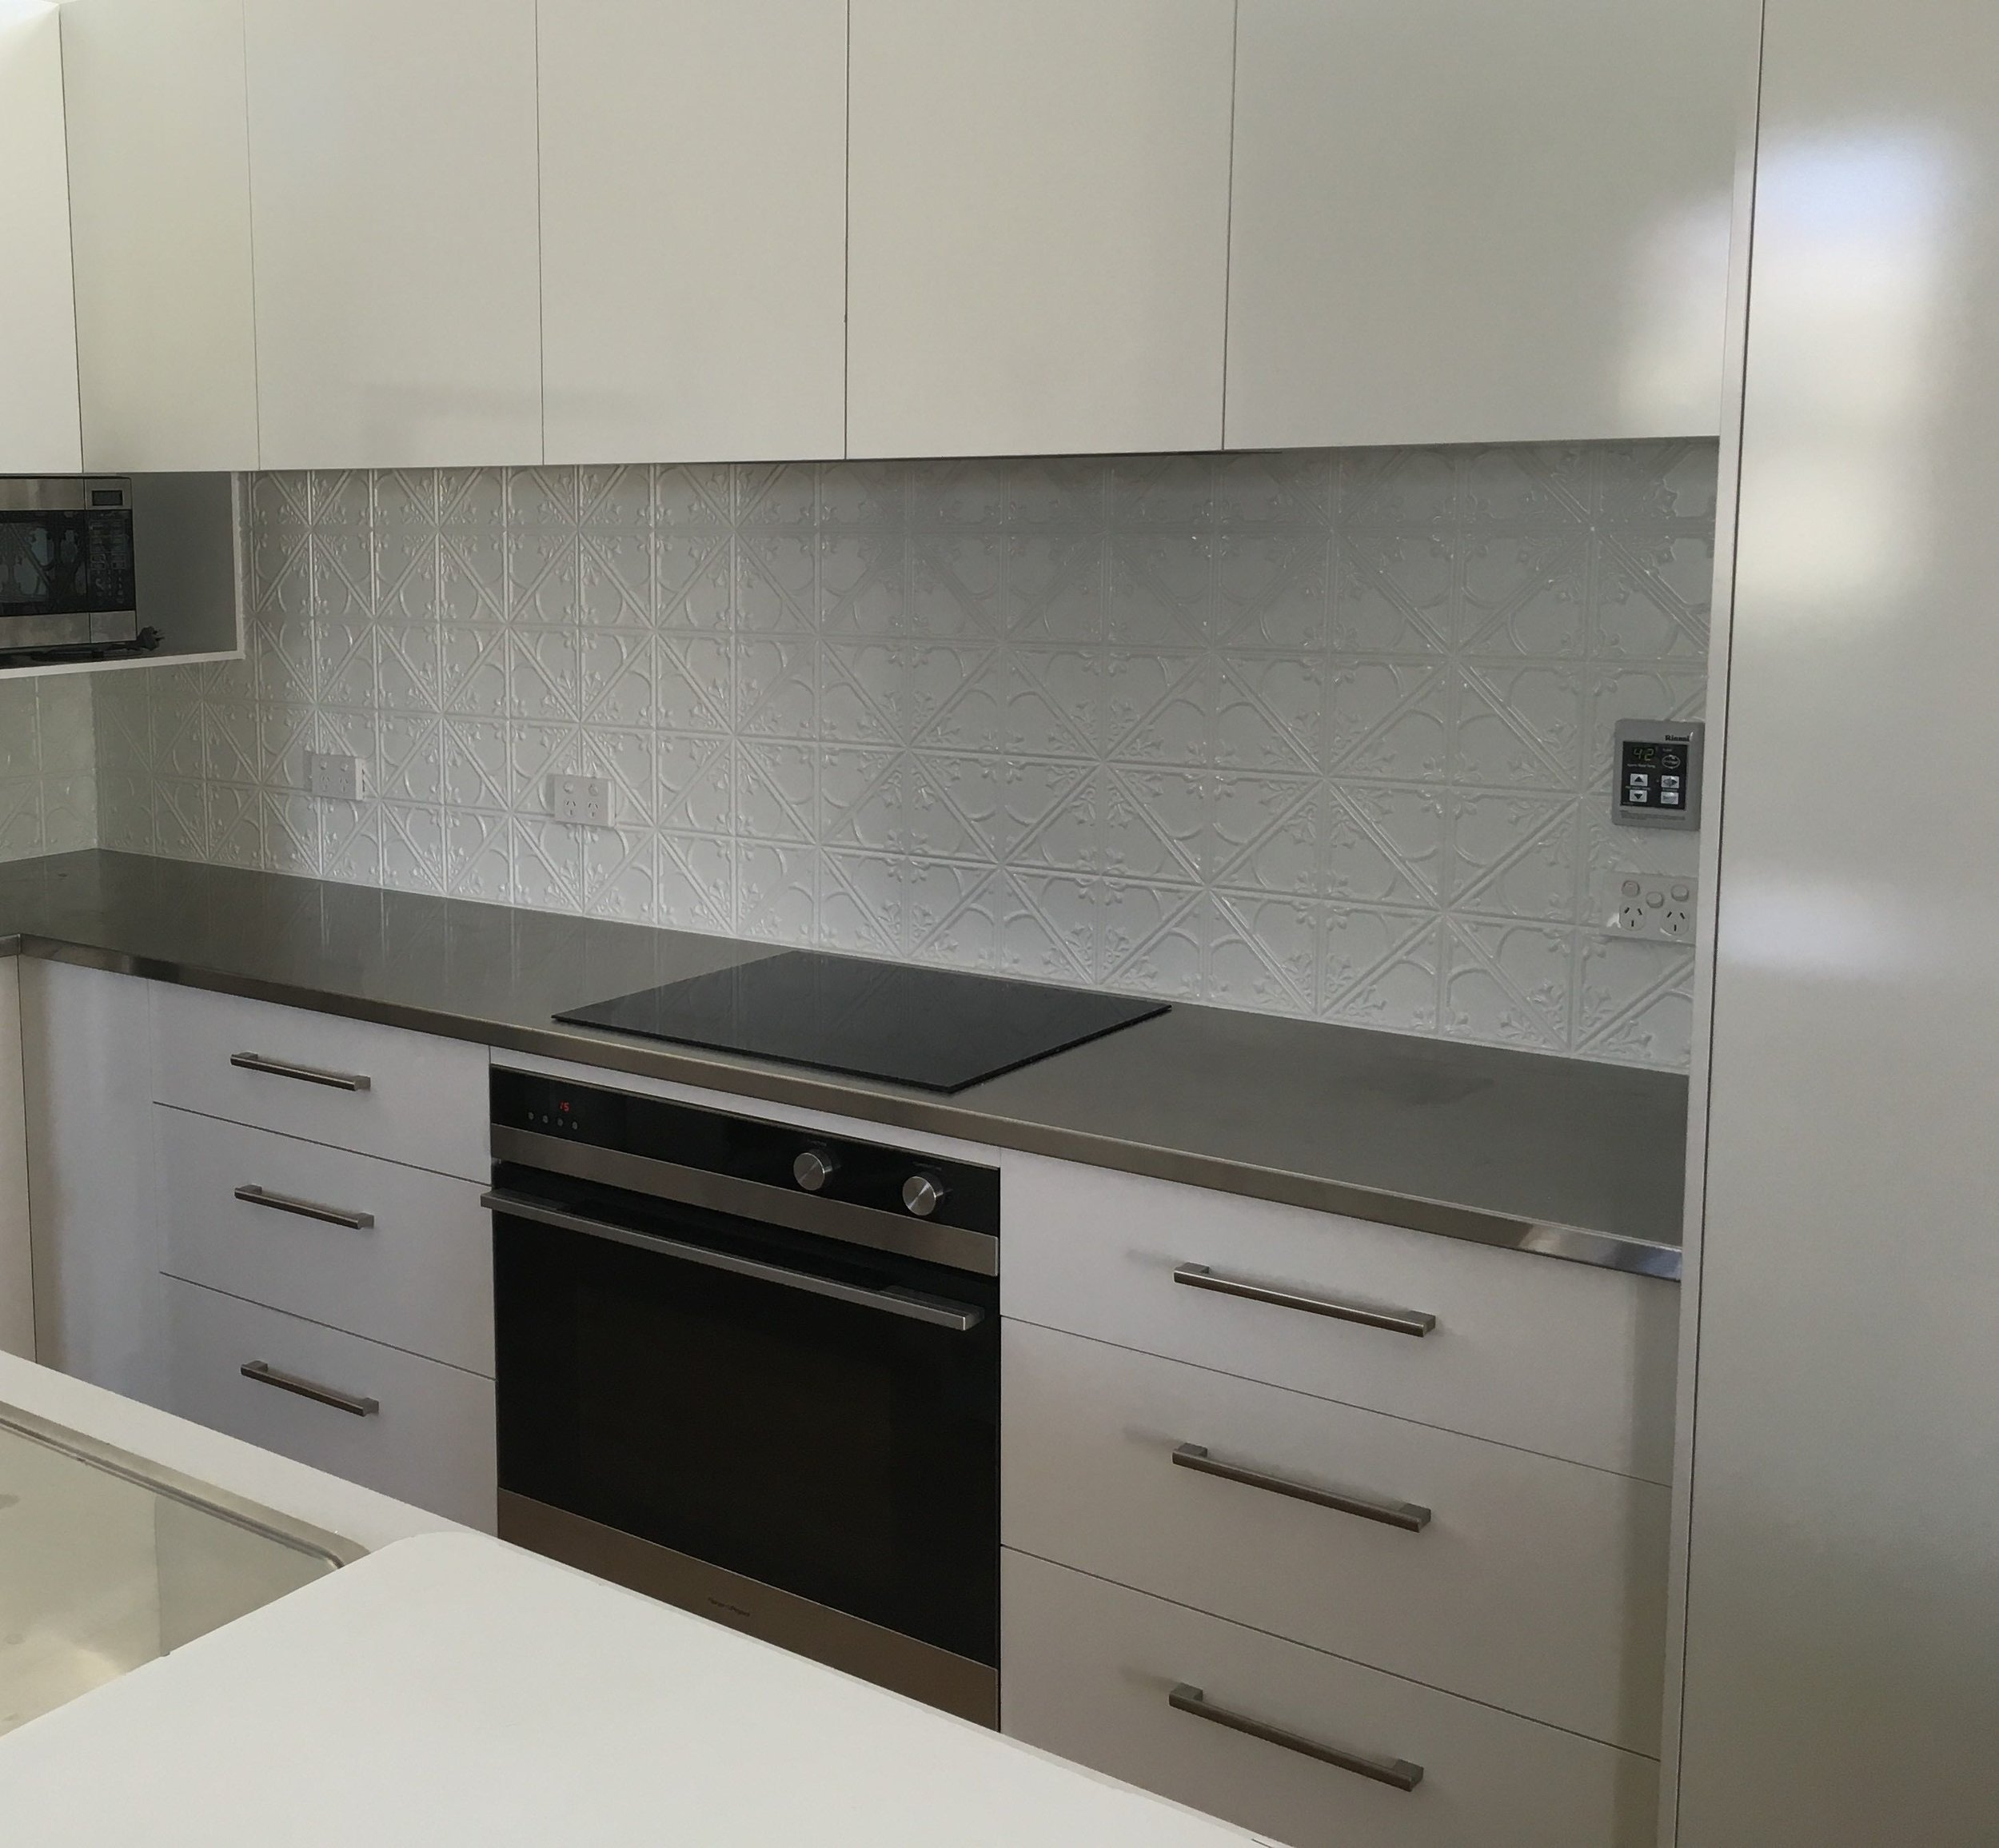 PRESSED METAL SPLASHBACK - OYSTER GREY